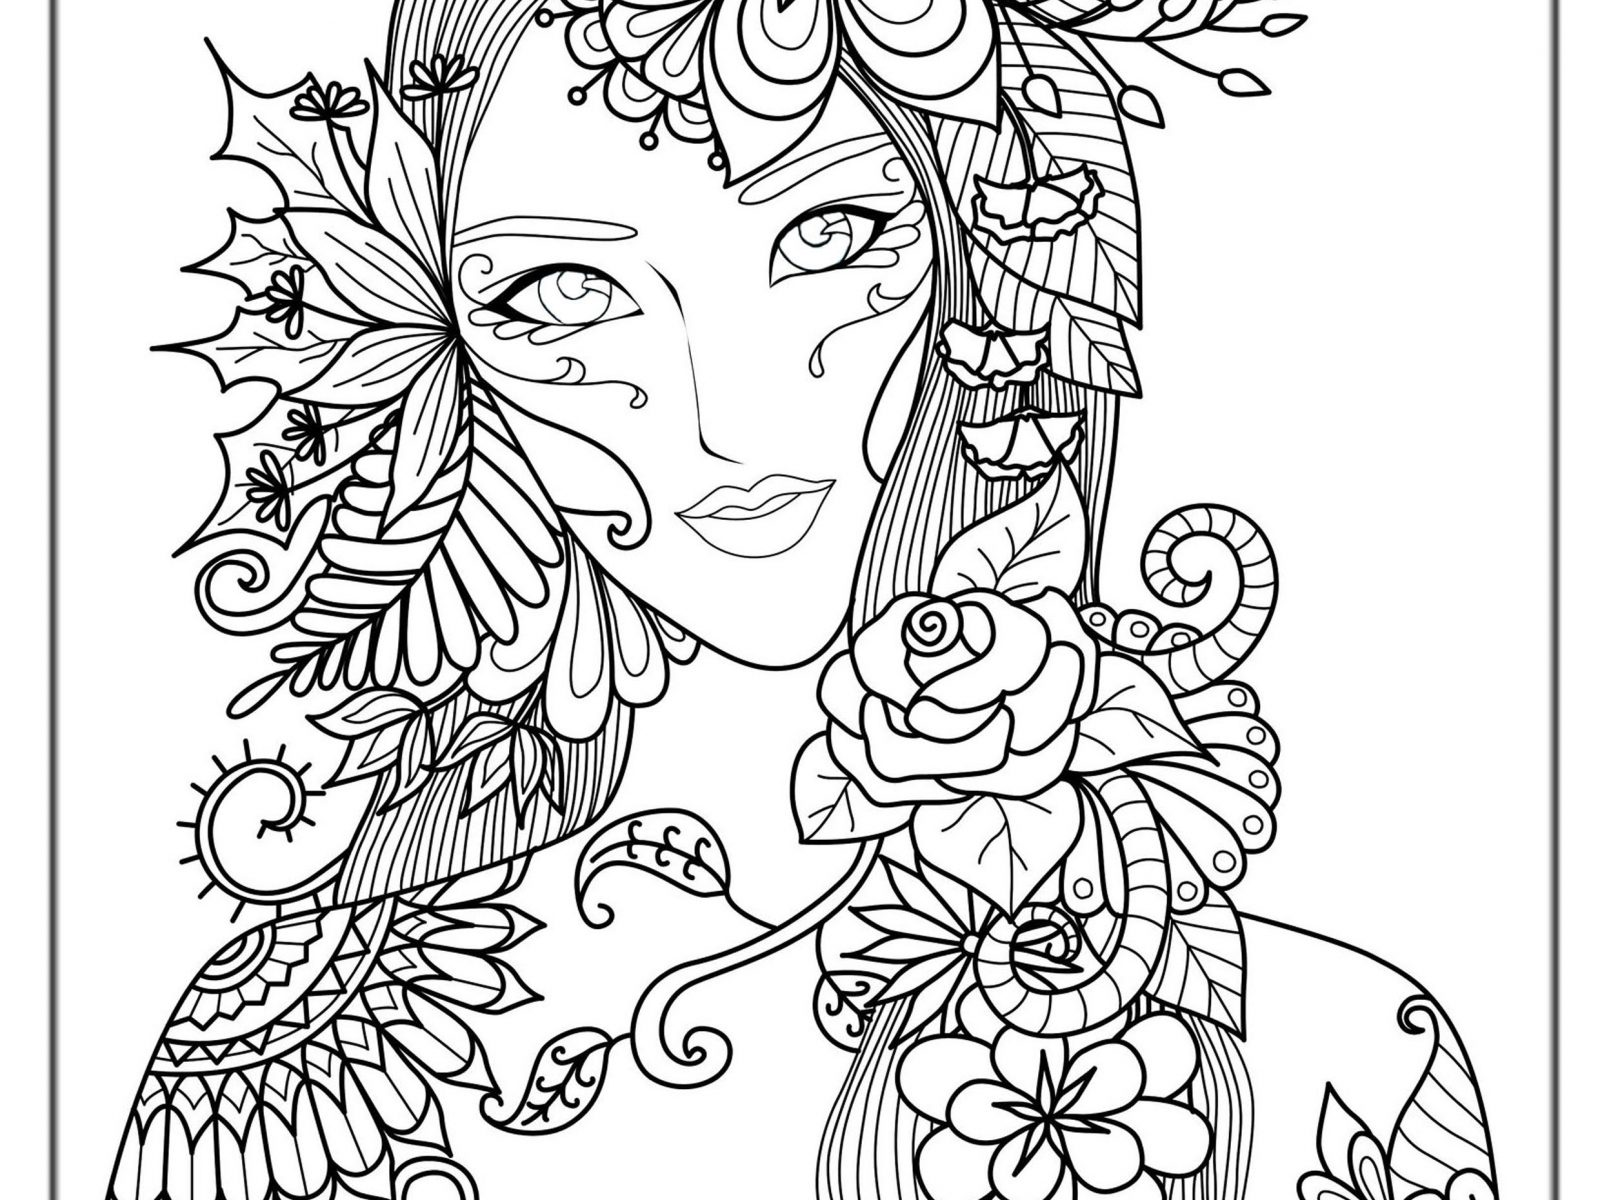 for coloring free printable tangled coloring pages for kids for coloring 1 1